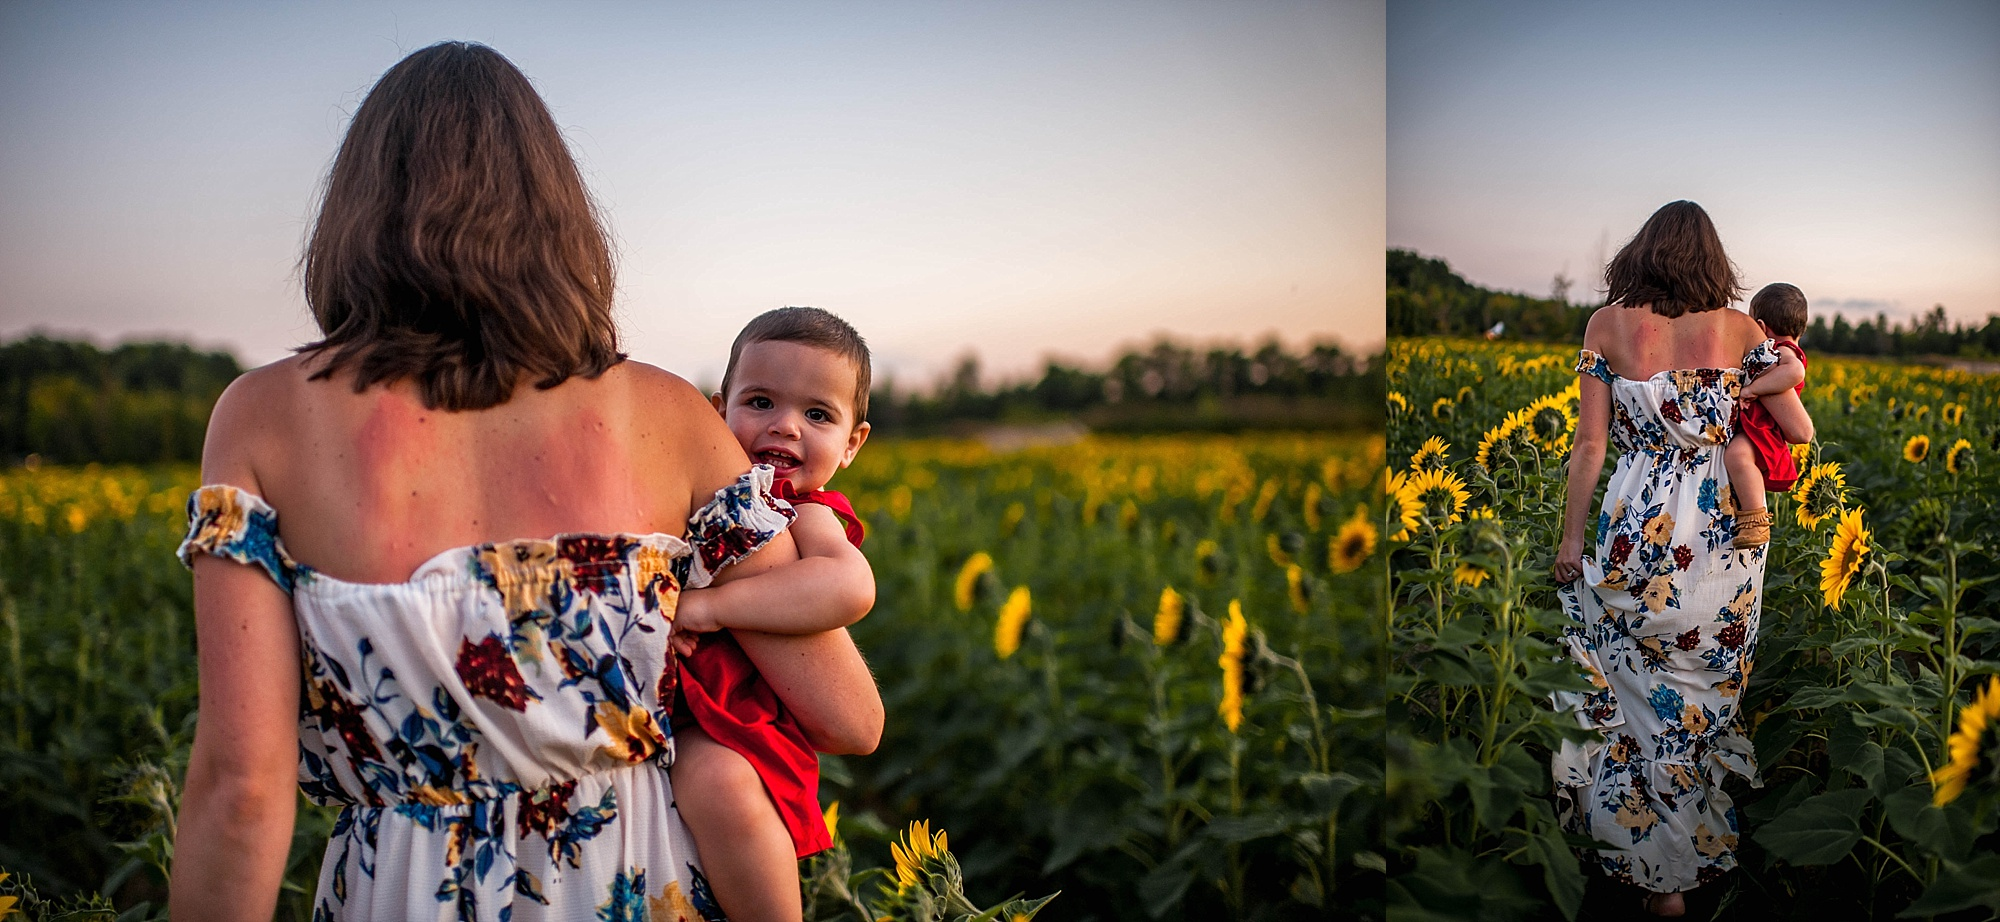 lauren-grayson-photography-cleveland-ohio-photographer-sunflower-fields-sunset-golden-hour-photo-shoot-mommy-and-me-family-child-photographer_0587.jpg